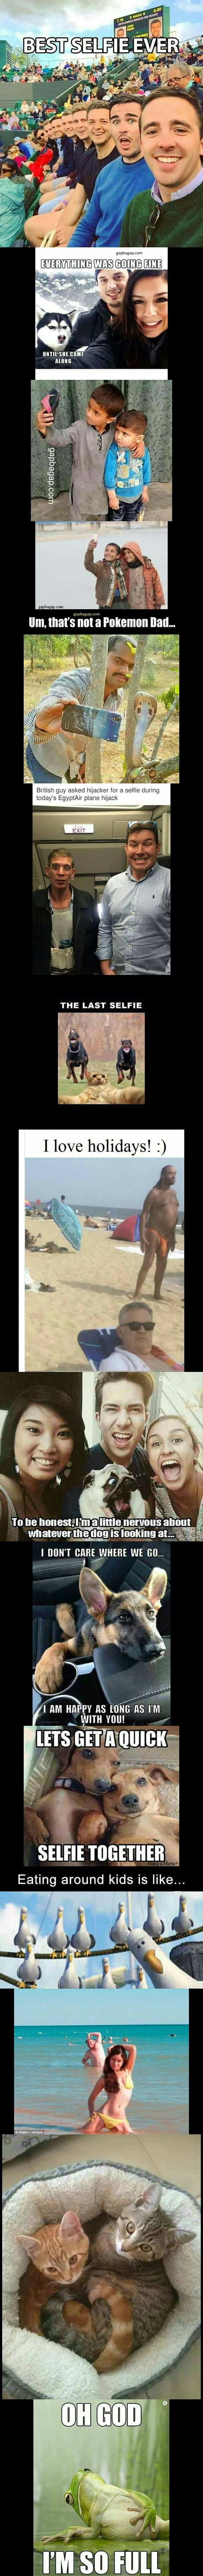 Top 15 Funny Pictures Of The Year